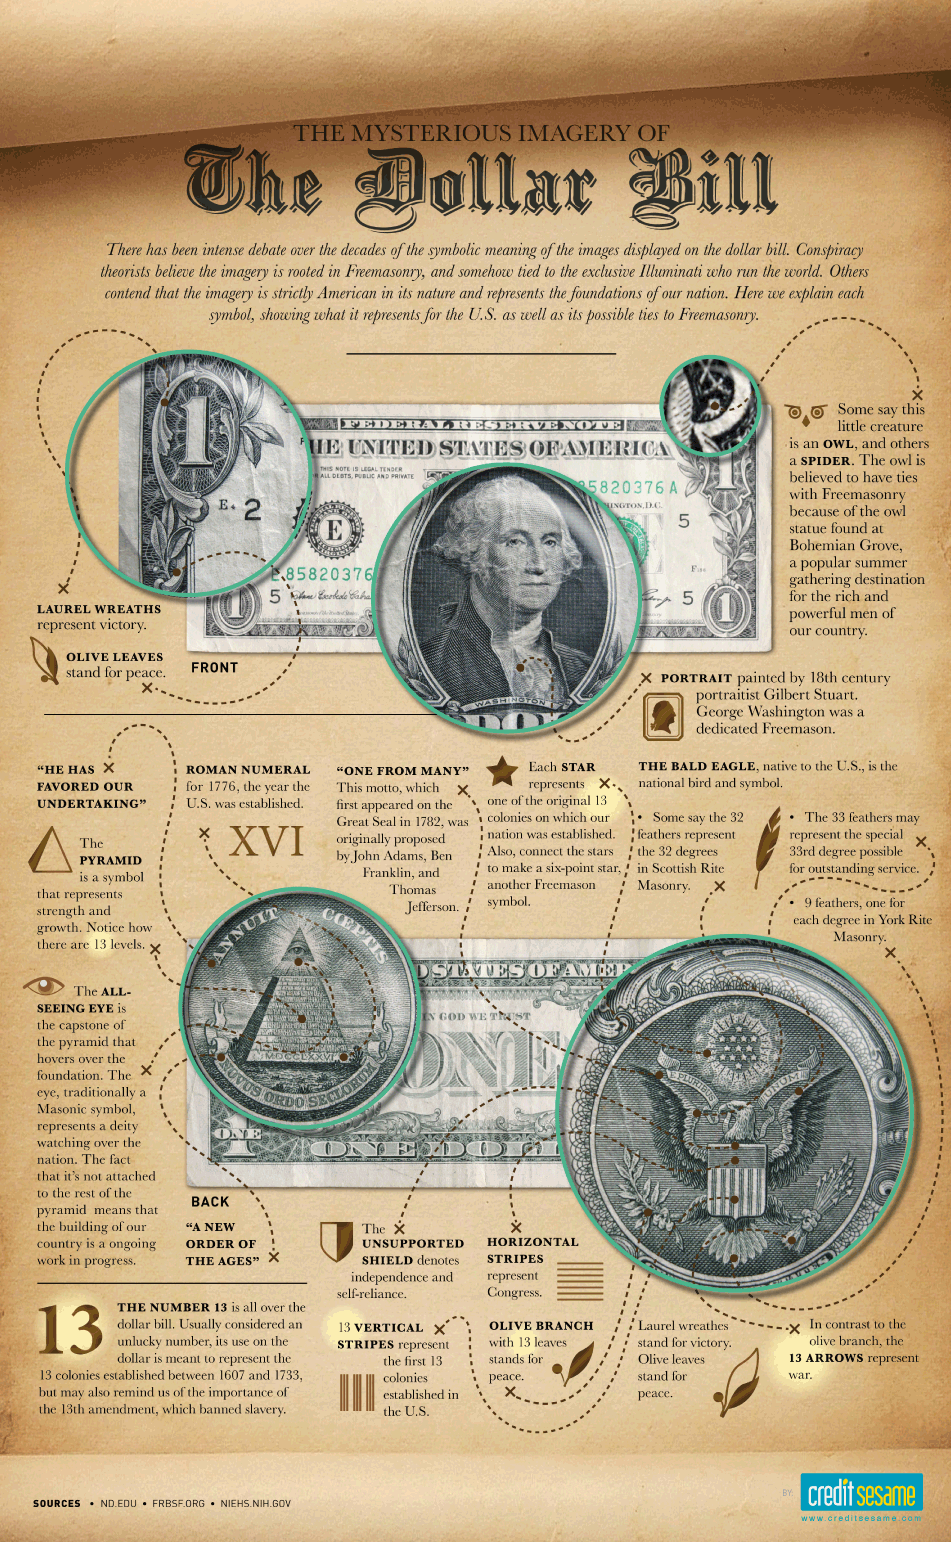 the mysterious imagery of the dollar bill credit sesame